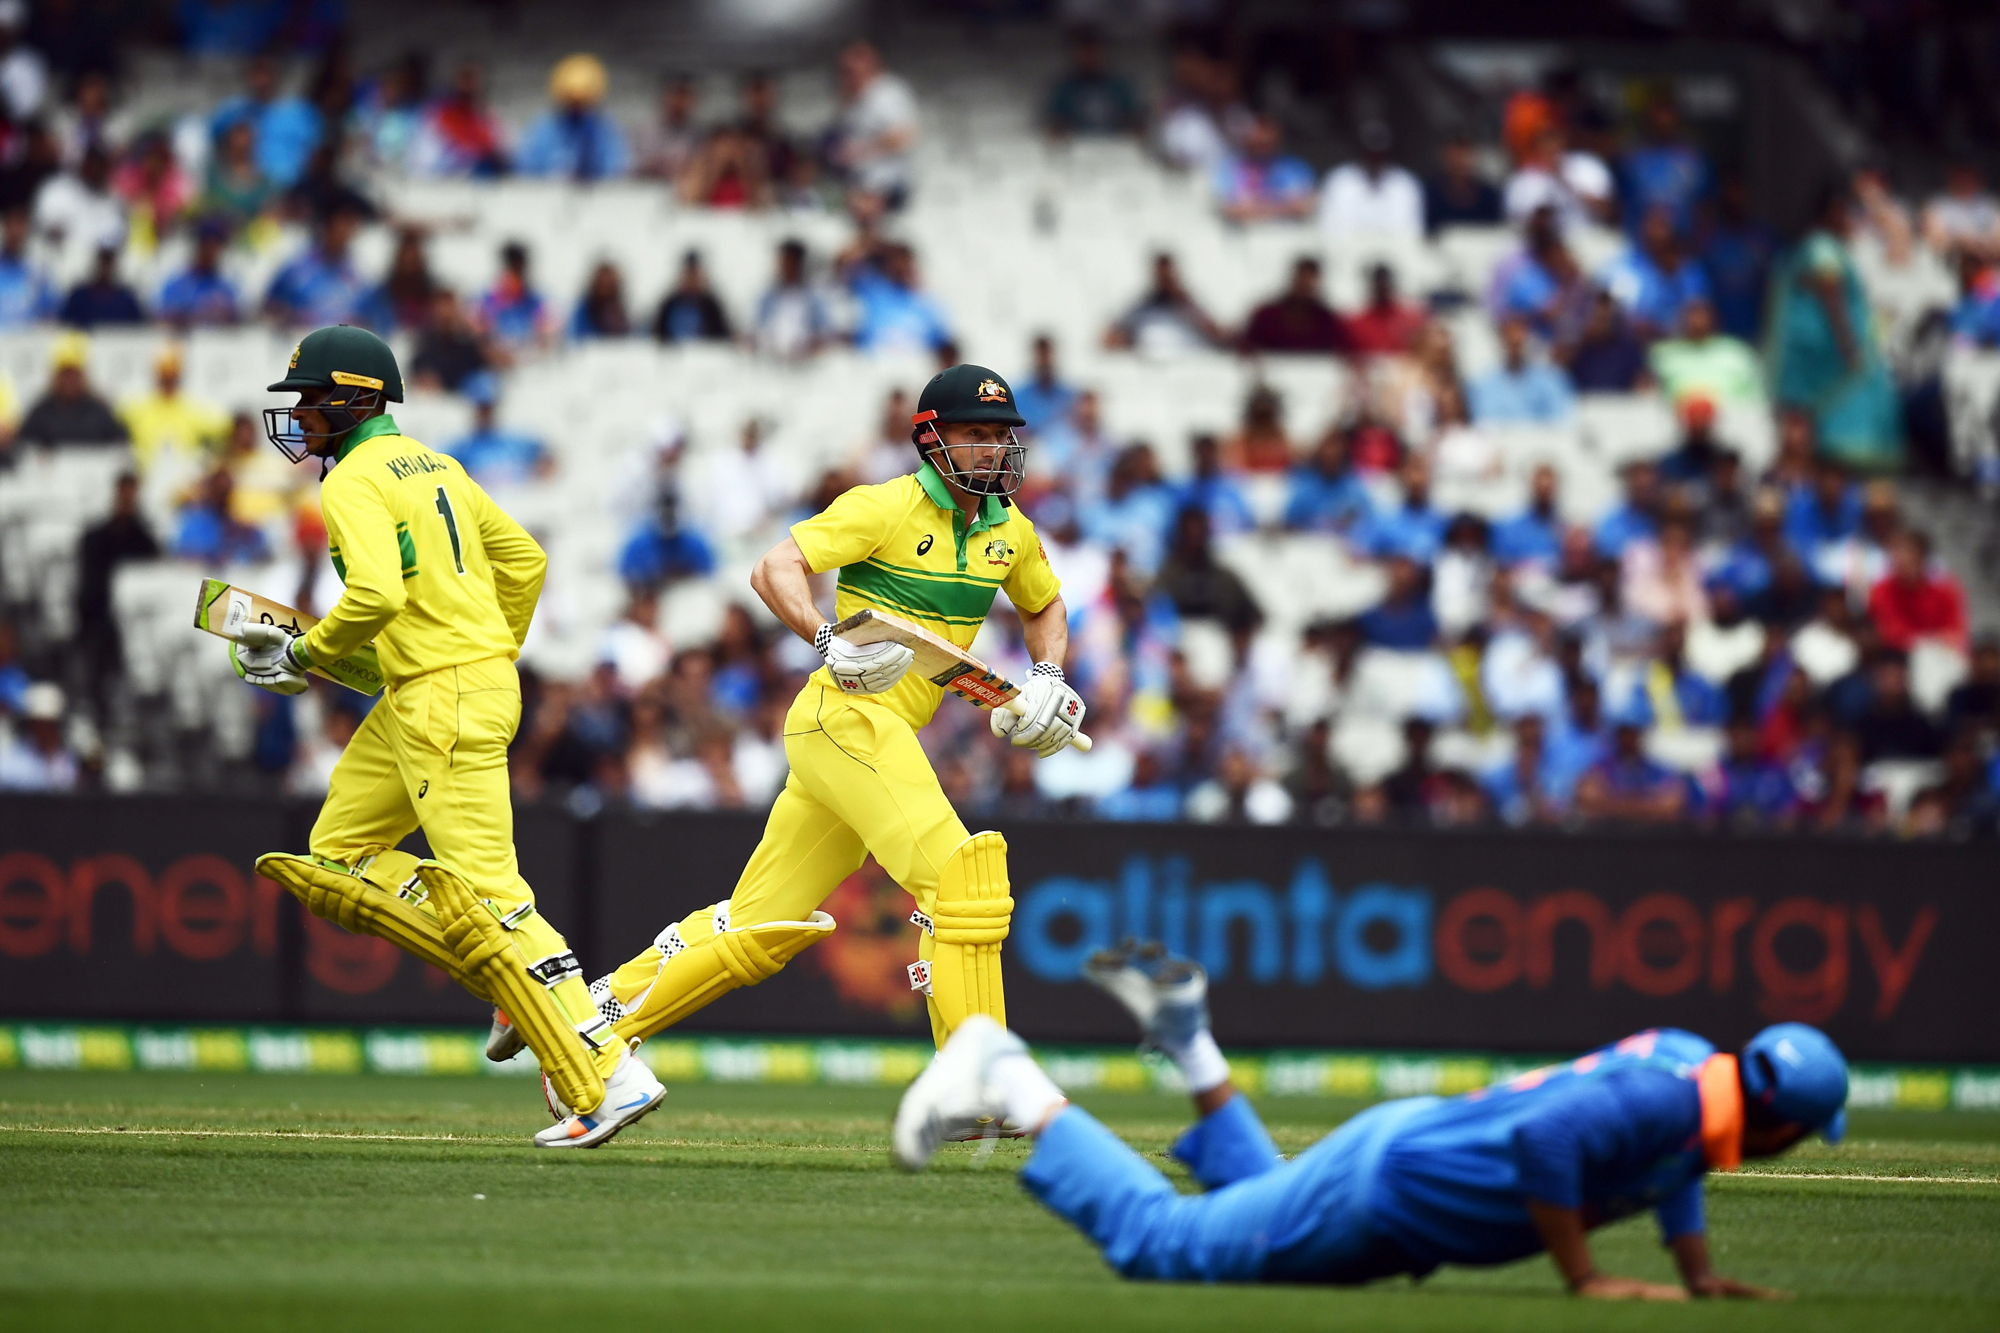 Australia vs India - Third ODI in Melbourne